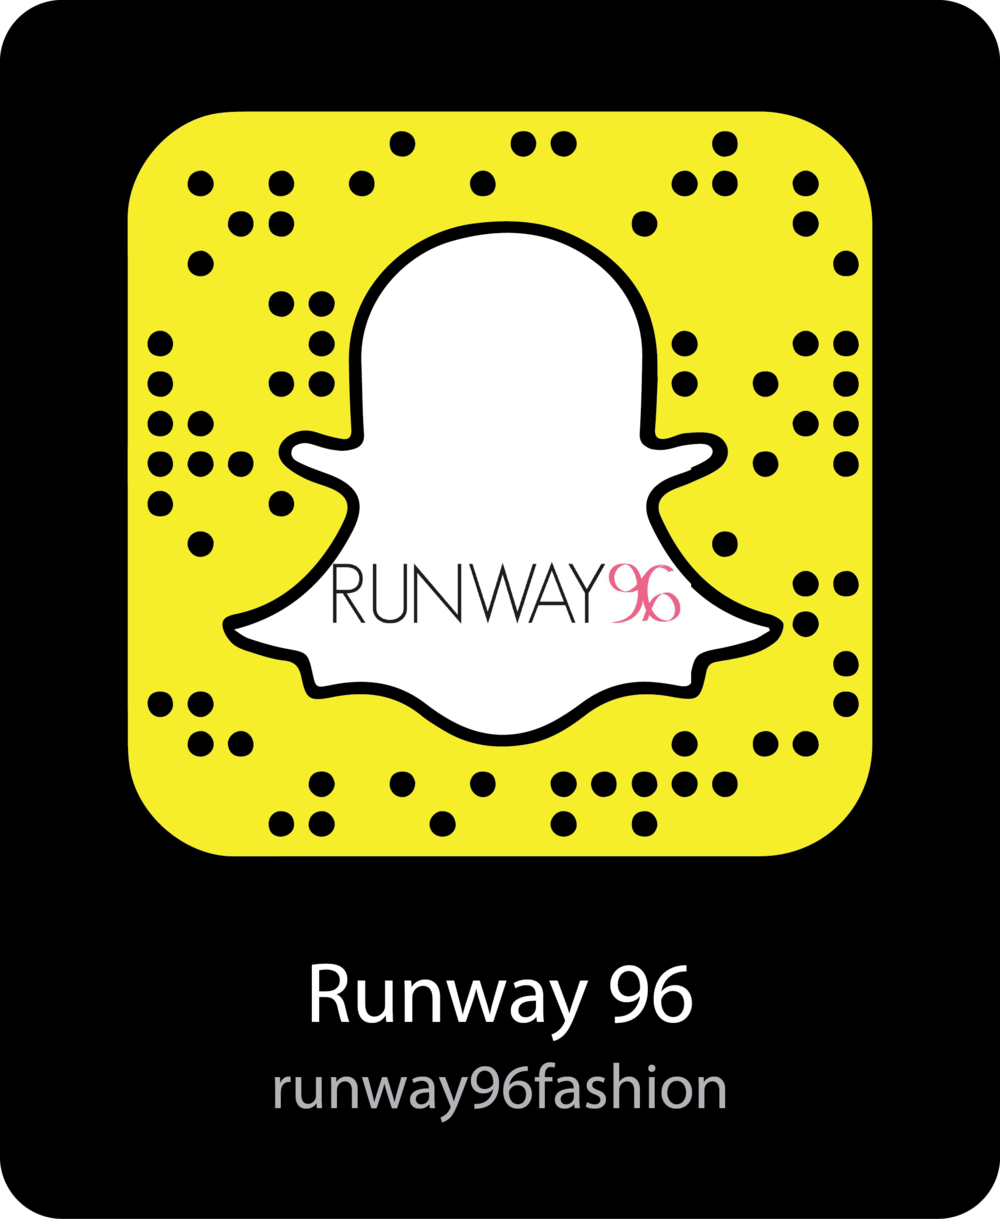 runway96fashion-snapchat-snapcode.png